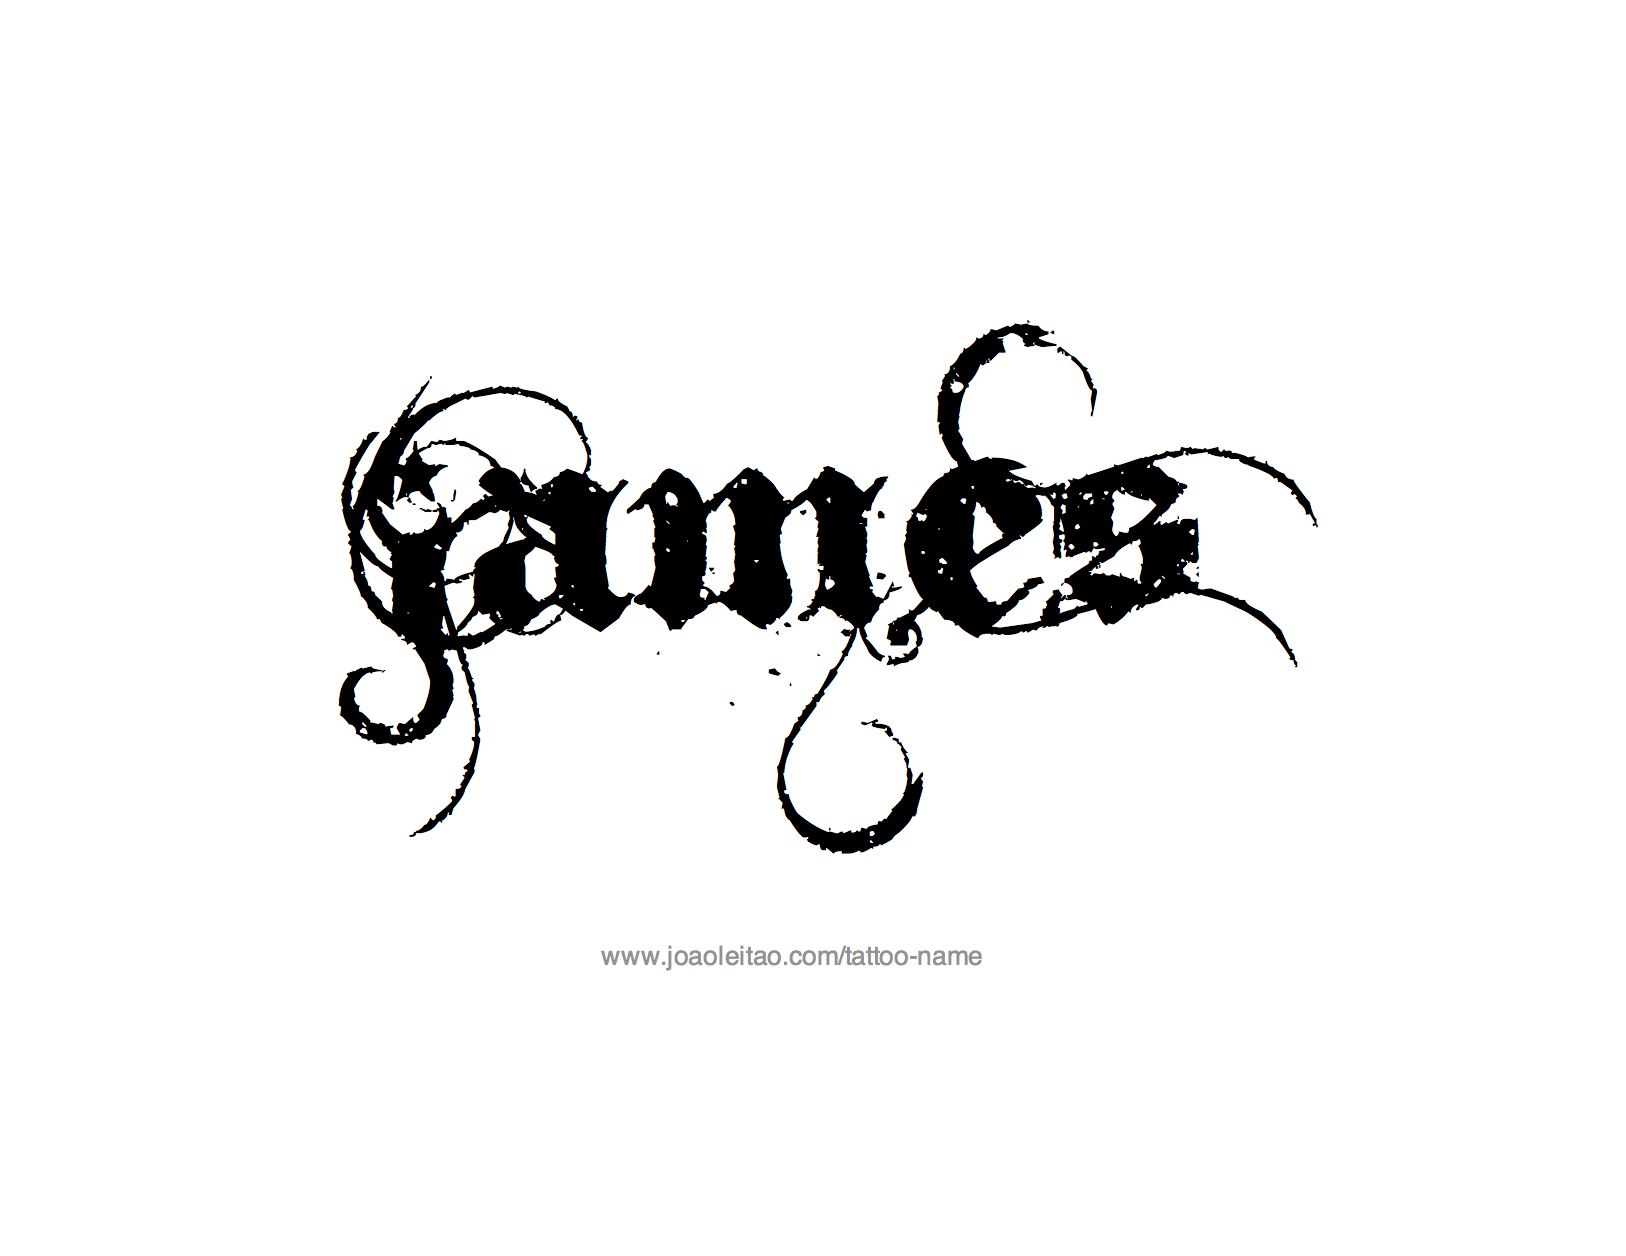 James Name Tattoo Designs Name Tattoos Name Tattoo Designs Name Tattoo